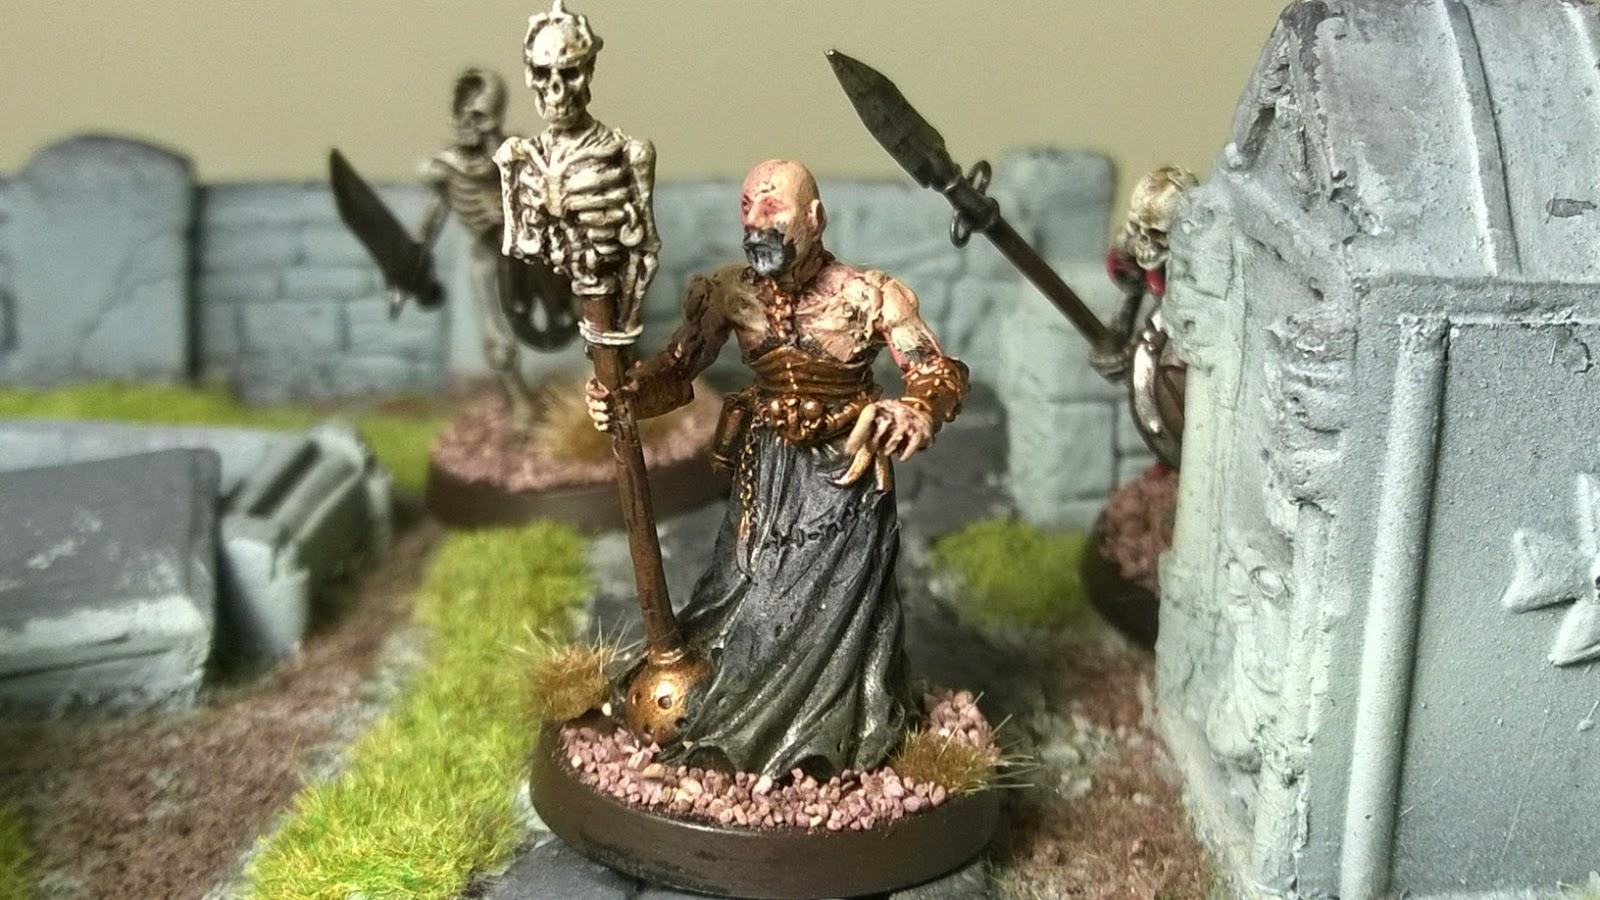 Heresy miniatures dark brethren tunnel priest necromancer